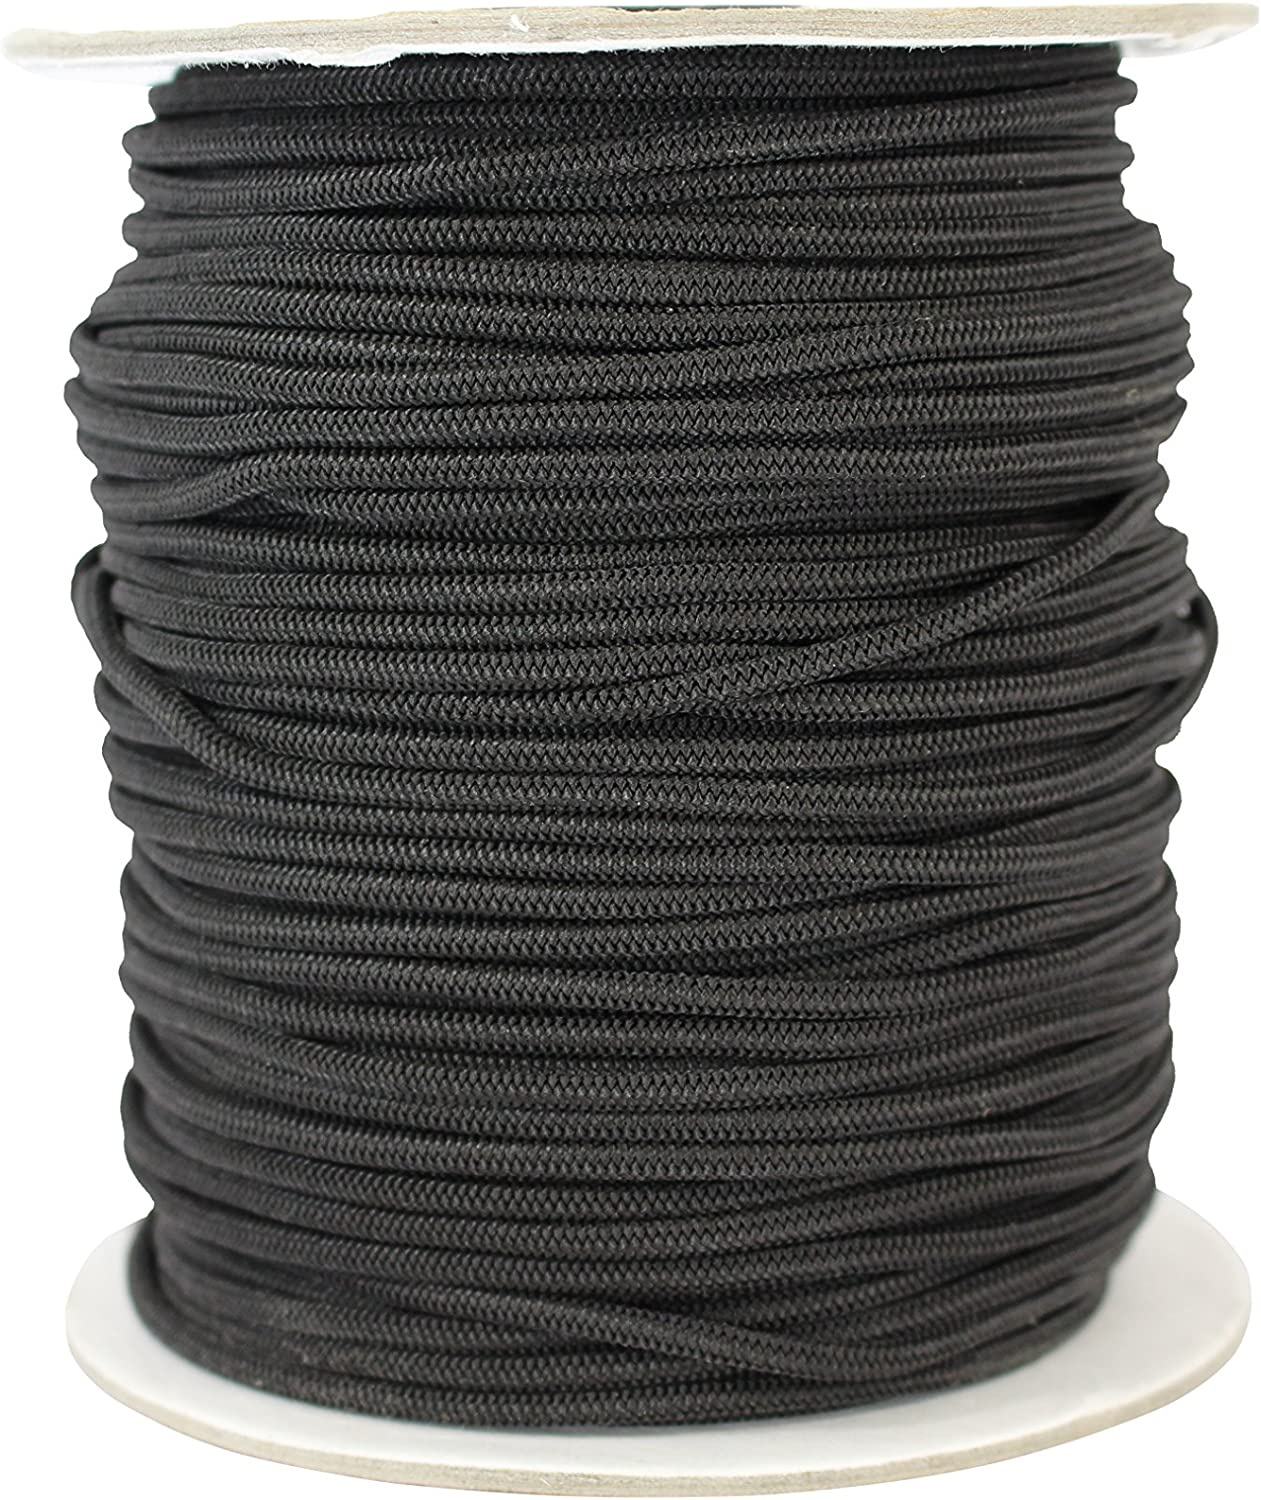 Sgt Knots Milspec Paracord Boot Laces 550 Nylon Lightweight